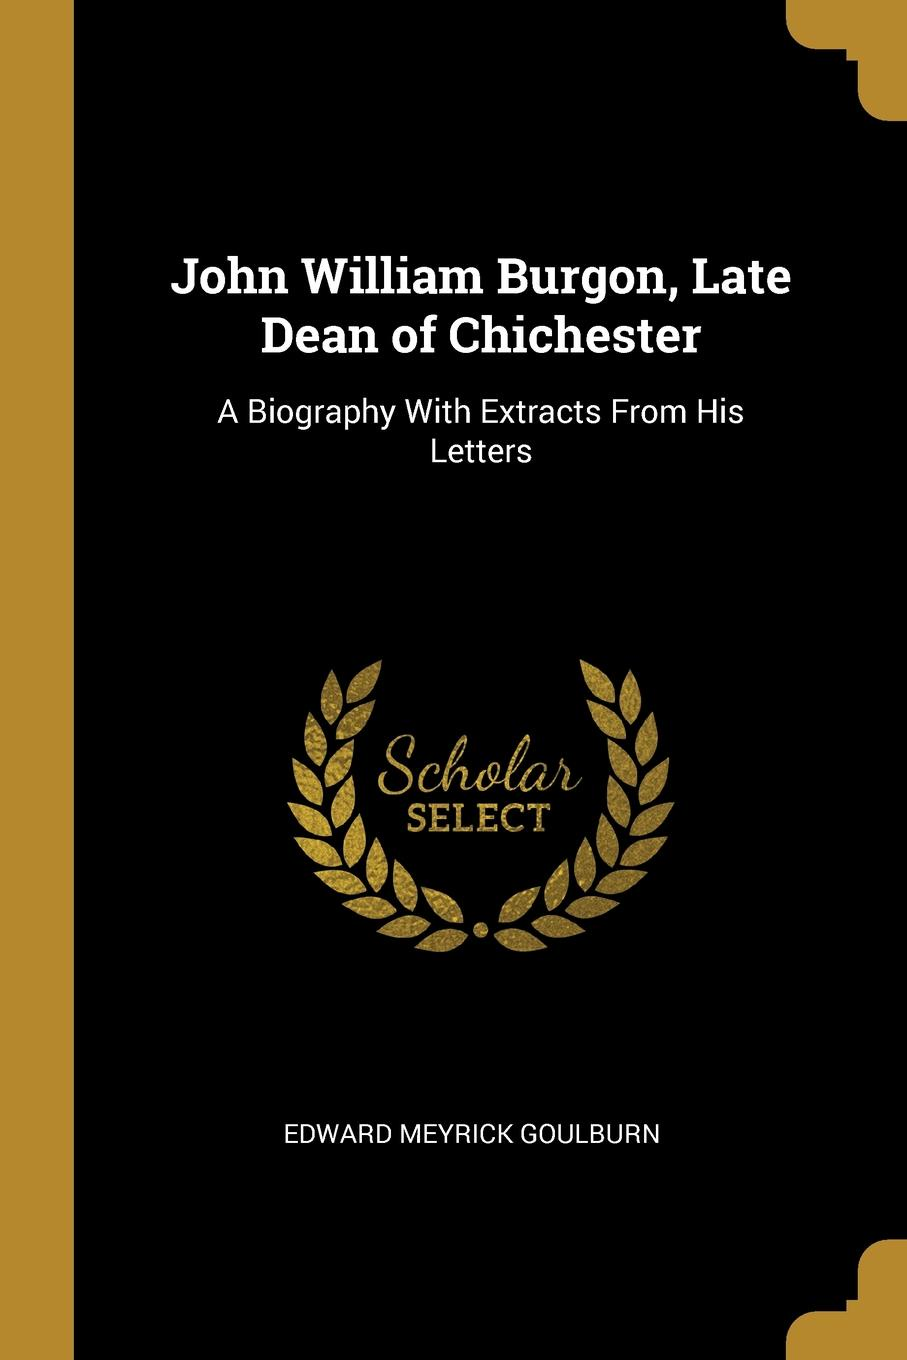 John William Burgon, Late Dean of Chichester. A Biography With Extracts From His Letters